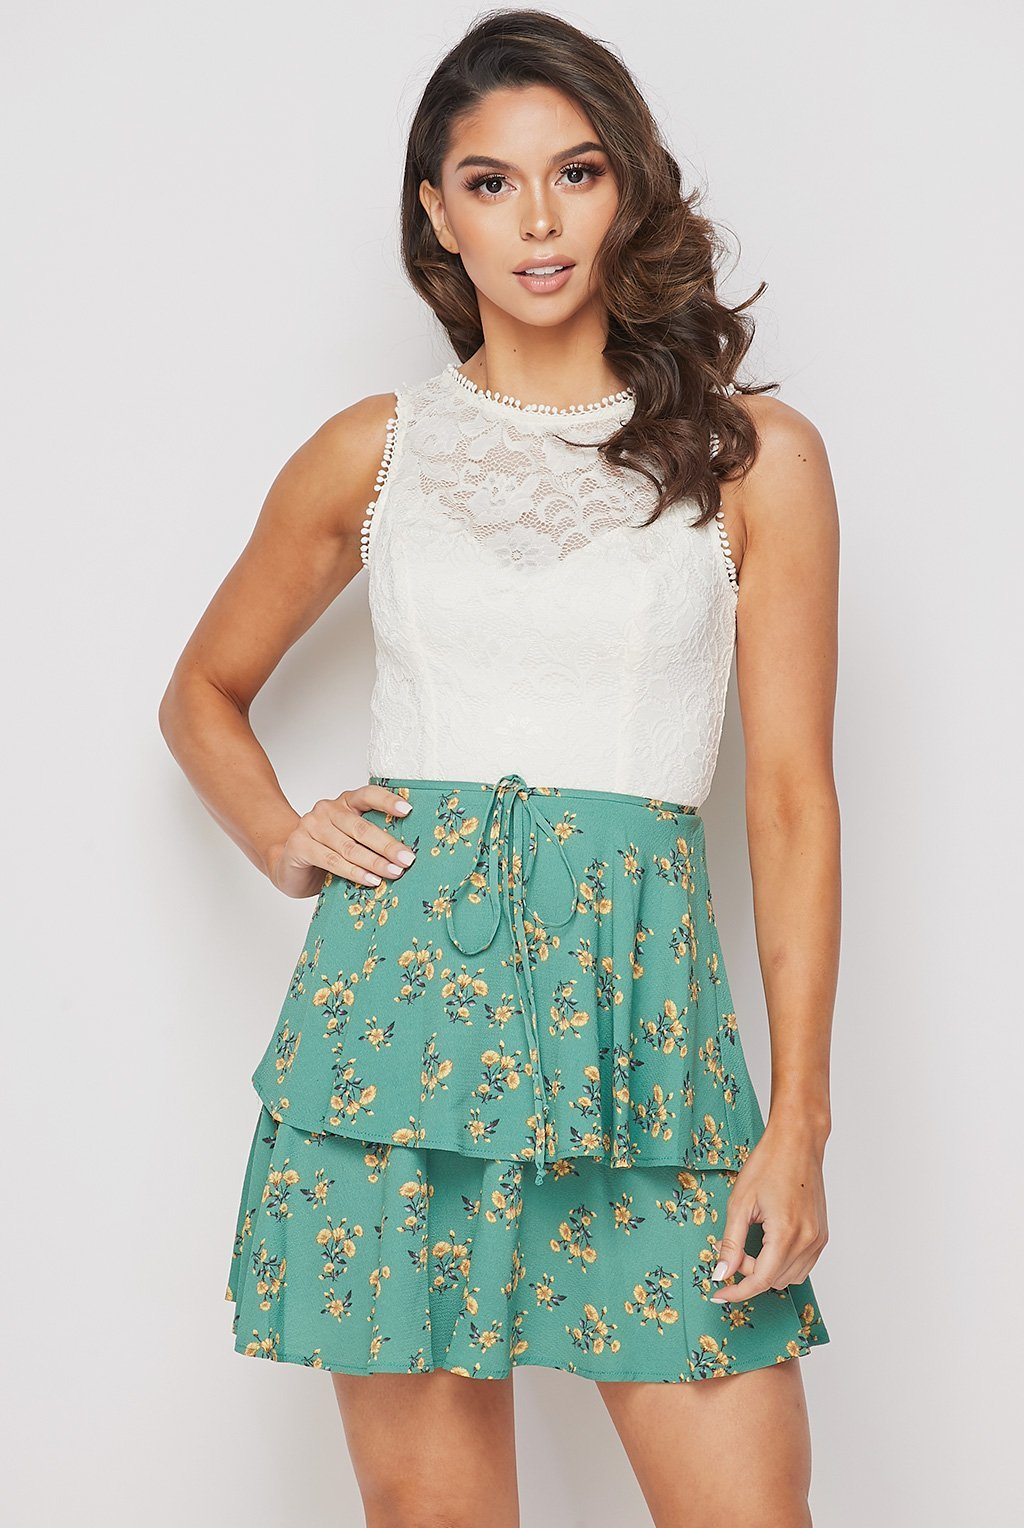 Teeze JMe | Flowers And Lace Tier Dress | Green/Ivory